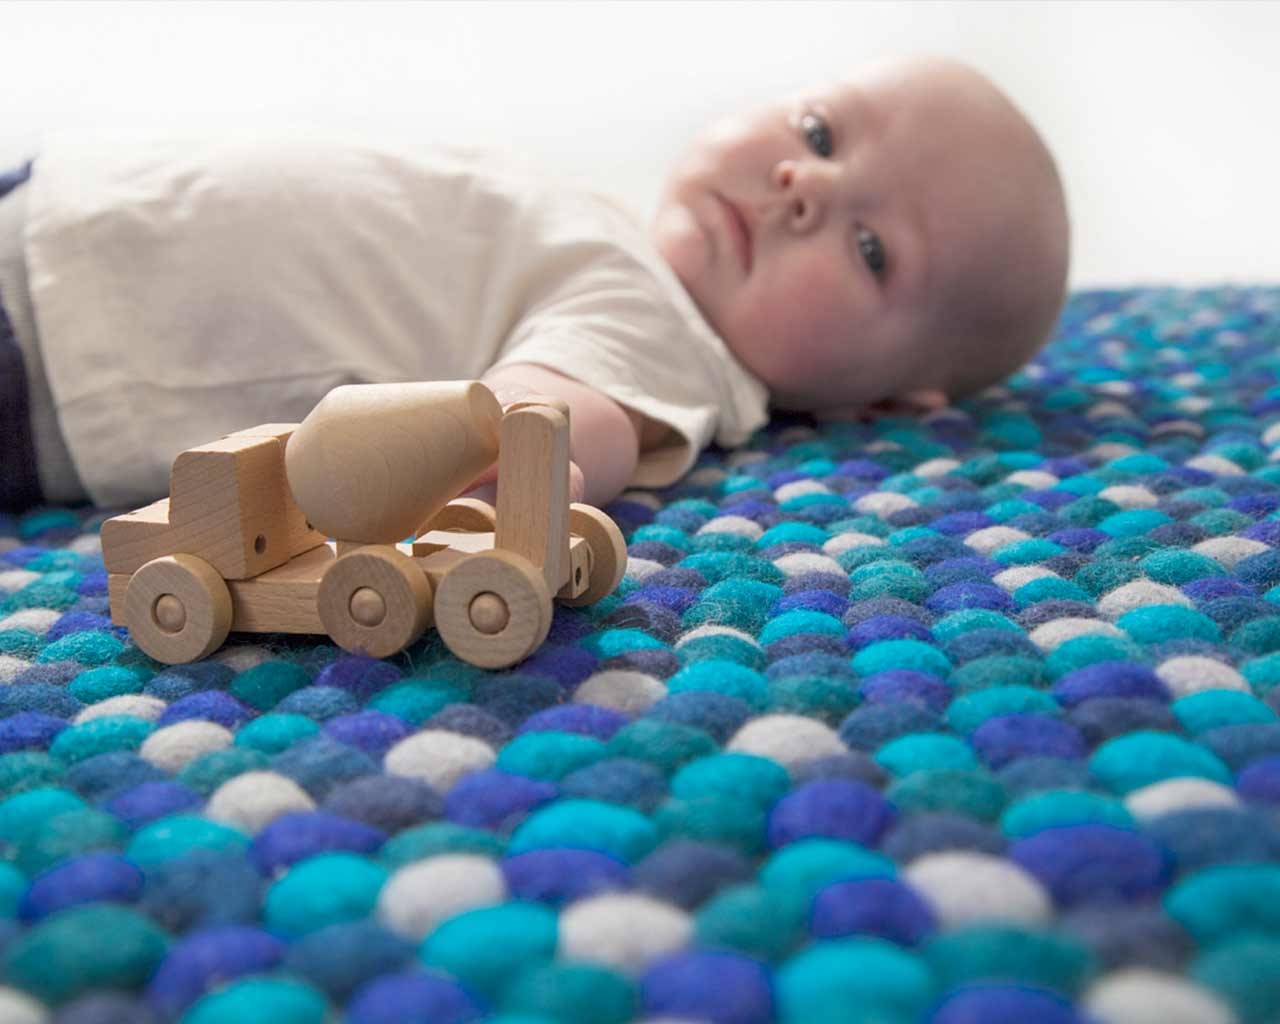 felt ball rug design round baby play wooden car